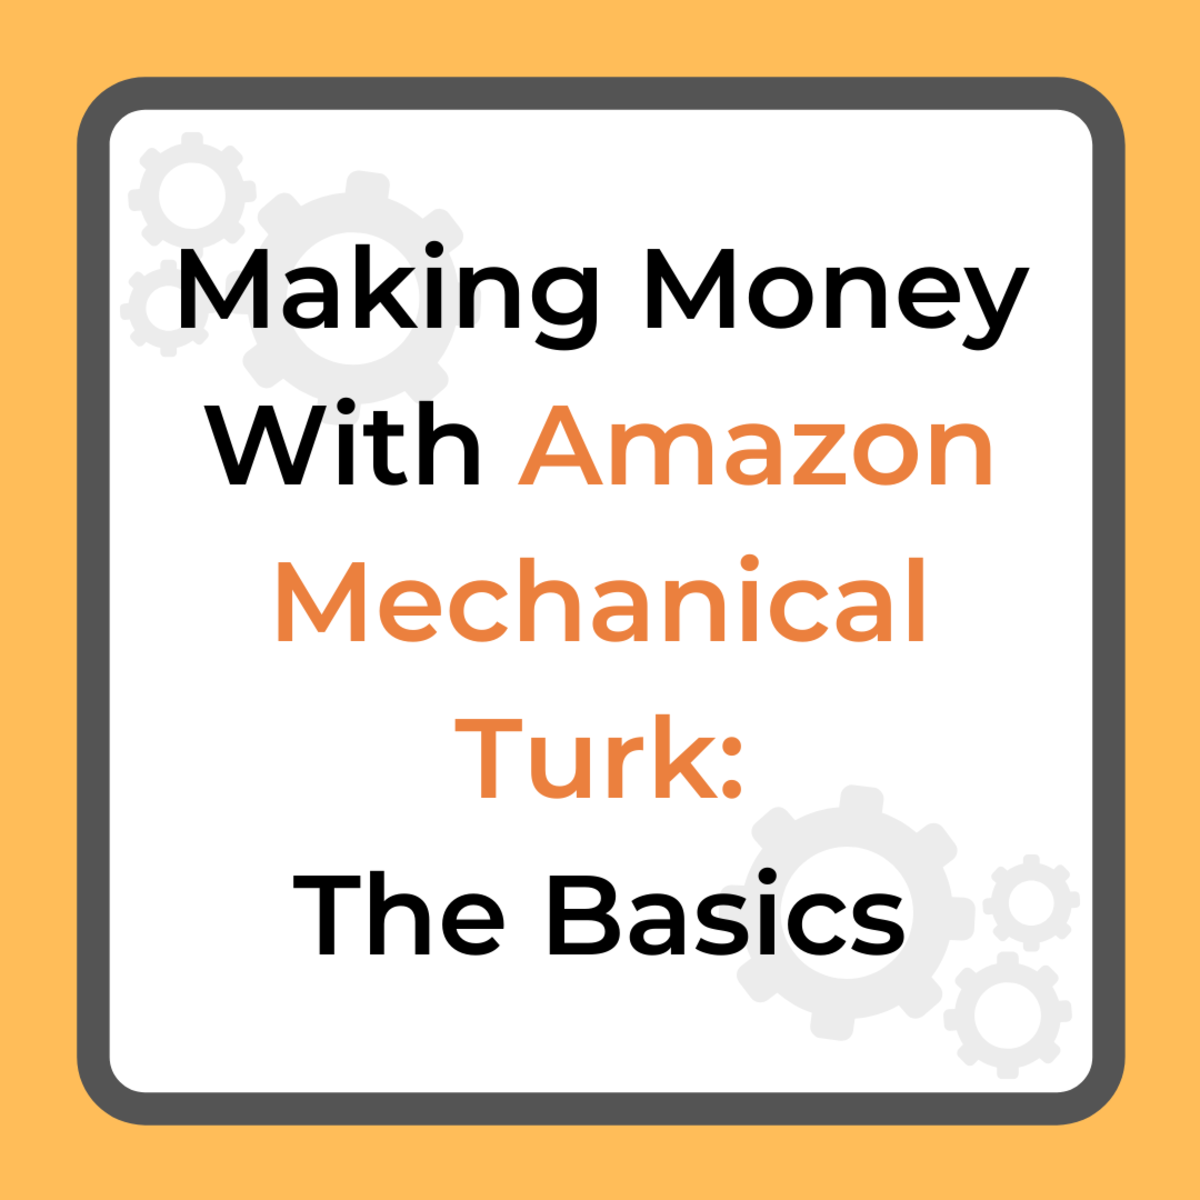 Learn more about Amazon's Mechanical Turk service, and get tips for earning income with it.